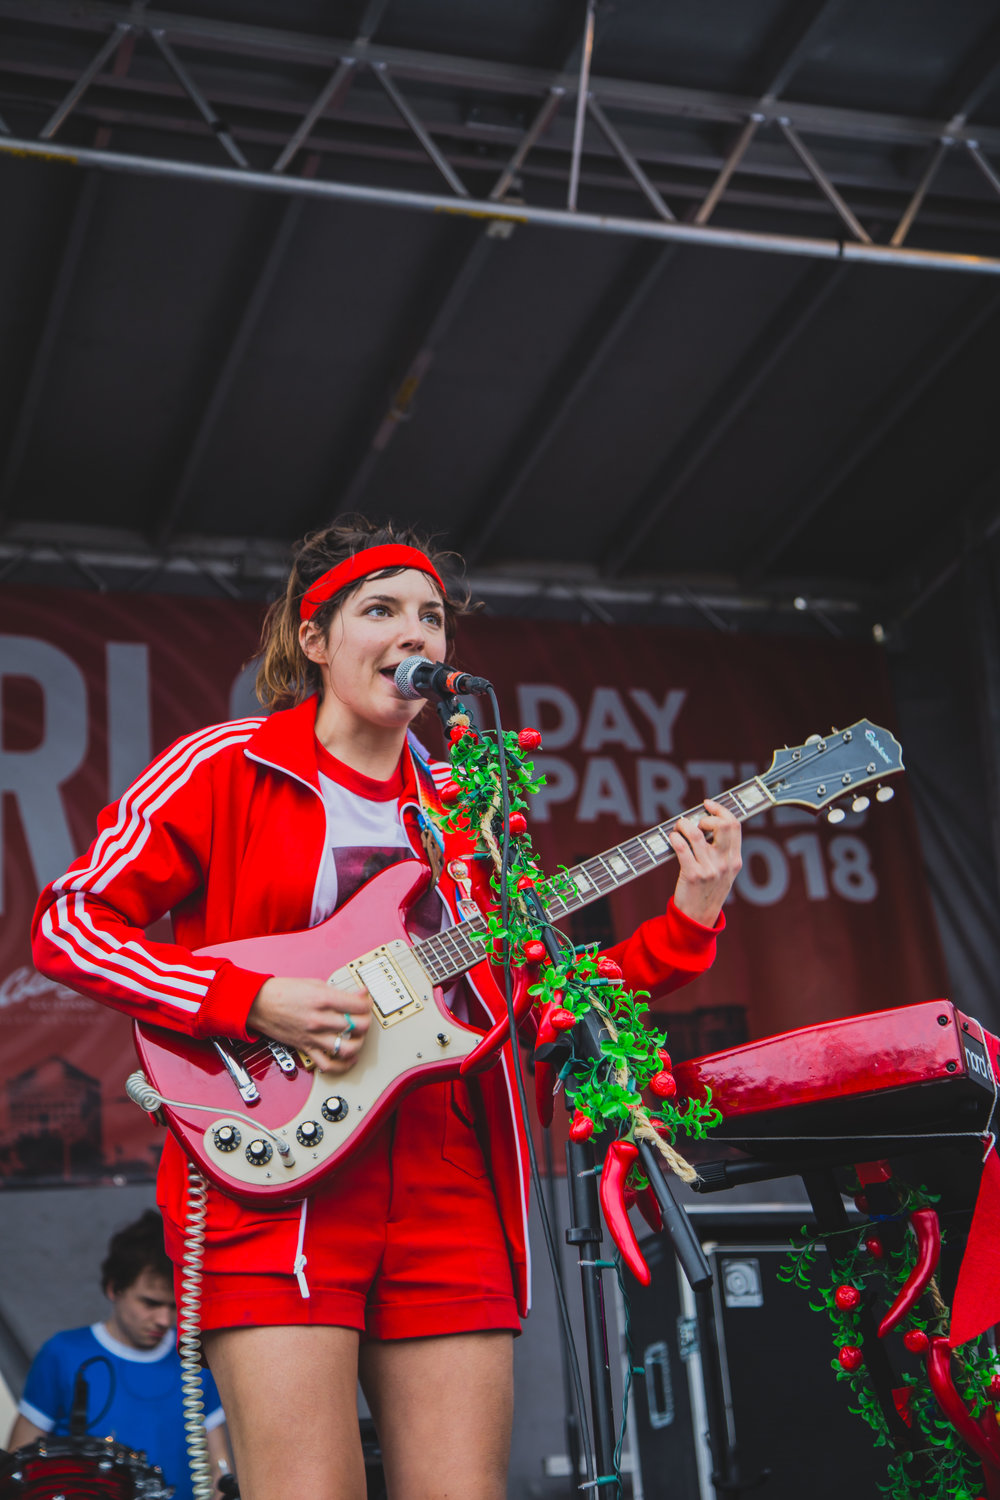 Caroline Rose performing at the Waterloo day party on 03.15.2018